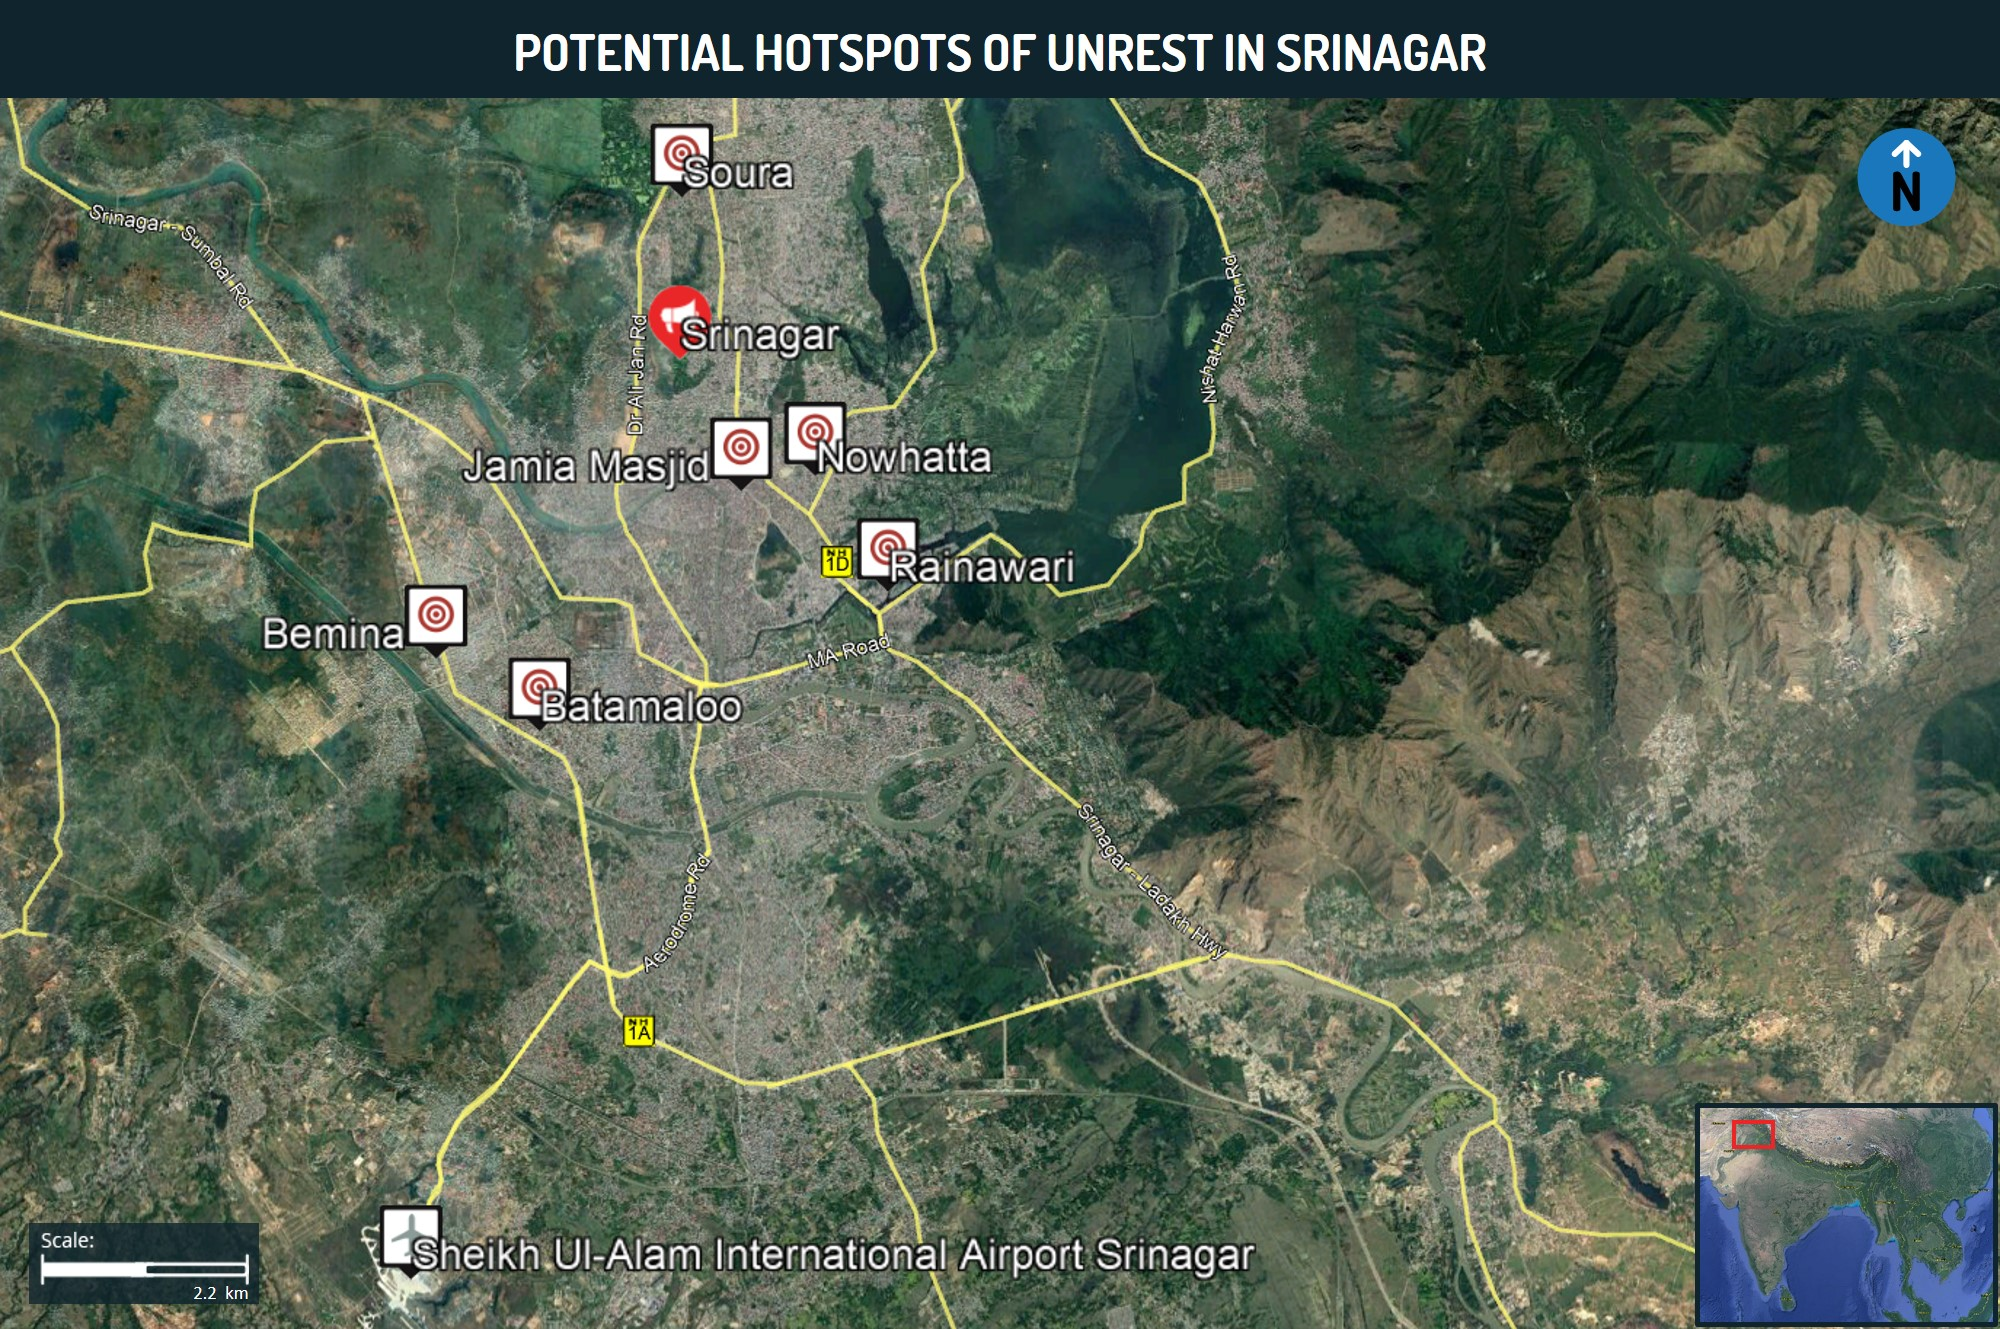 Potential Hopspots of Unrest in Srinagar